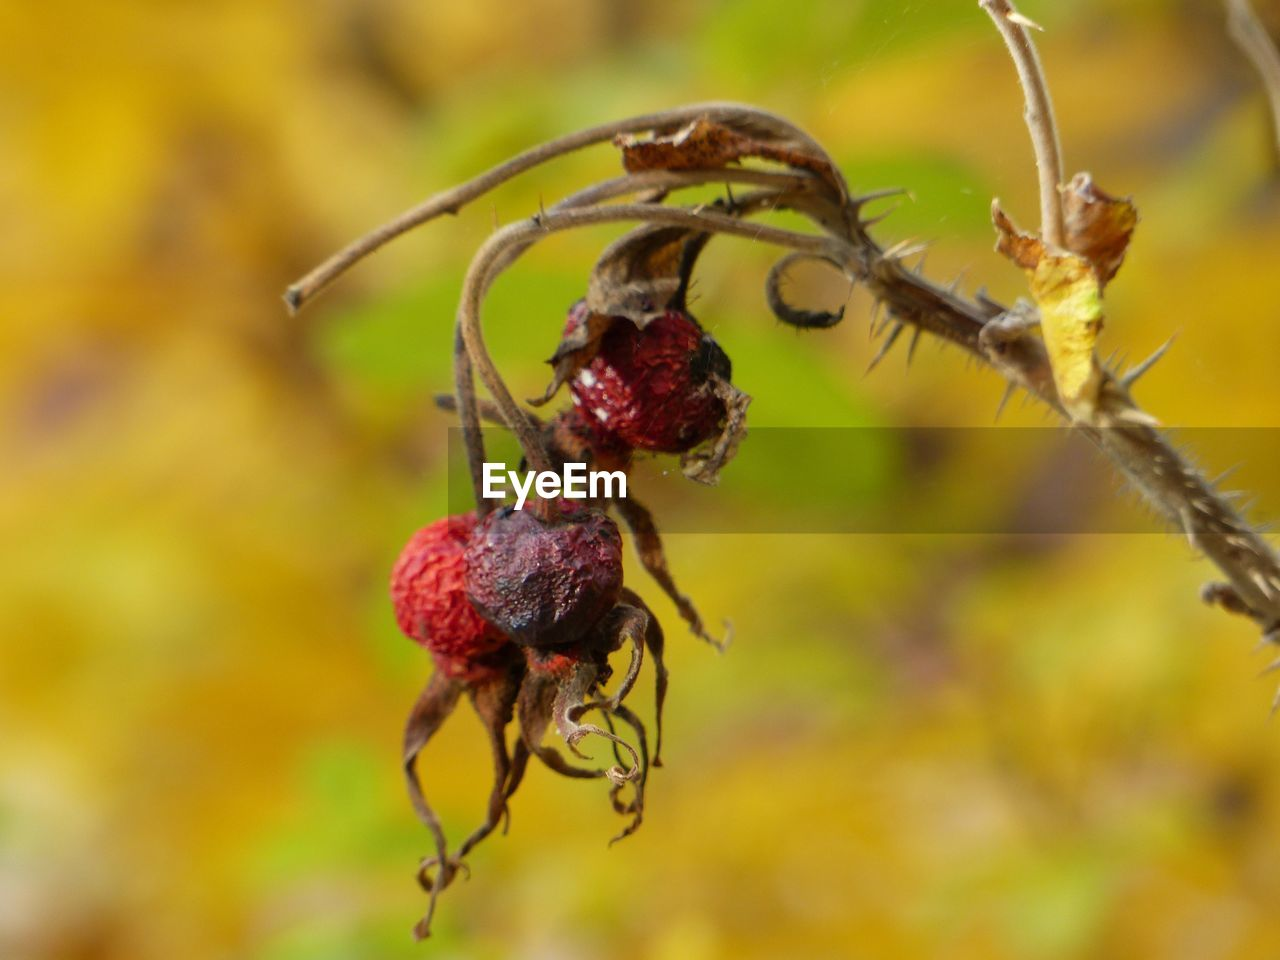 close-up, plant, no people, growth, nature, focus on foreground, day, beauty in nature, fragility, red, food, food and drink, healthy eating, vulnerability, outdoors, fruit, flower, invertebrate, selective focus, insect, wilted plant